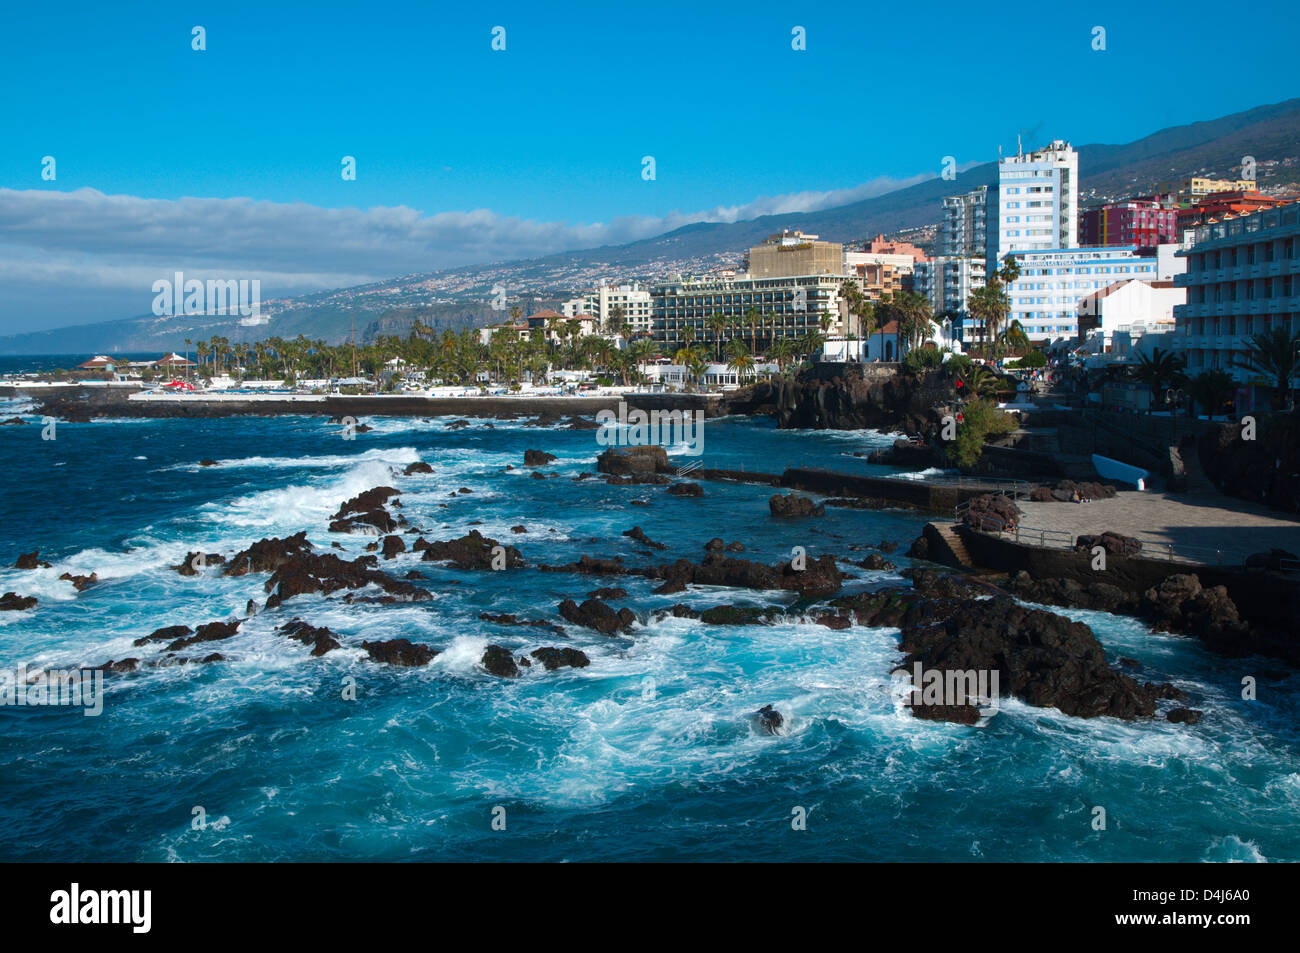 Playa san telmo beach puerto de la cruz city tenerife island the stock photo royalty free image - Playa puerto de la cruz tenerife ...